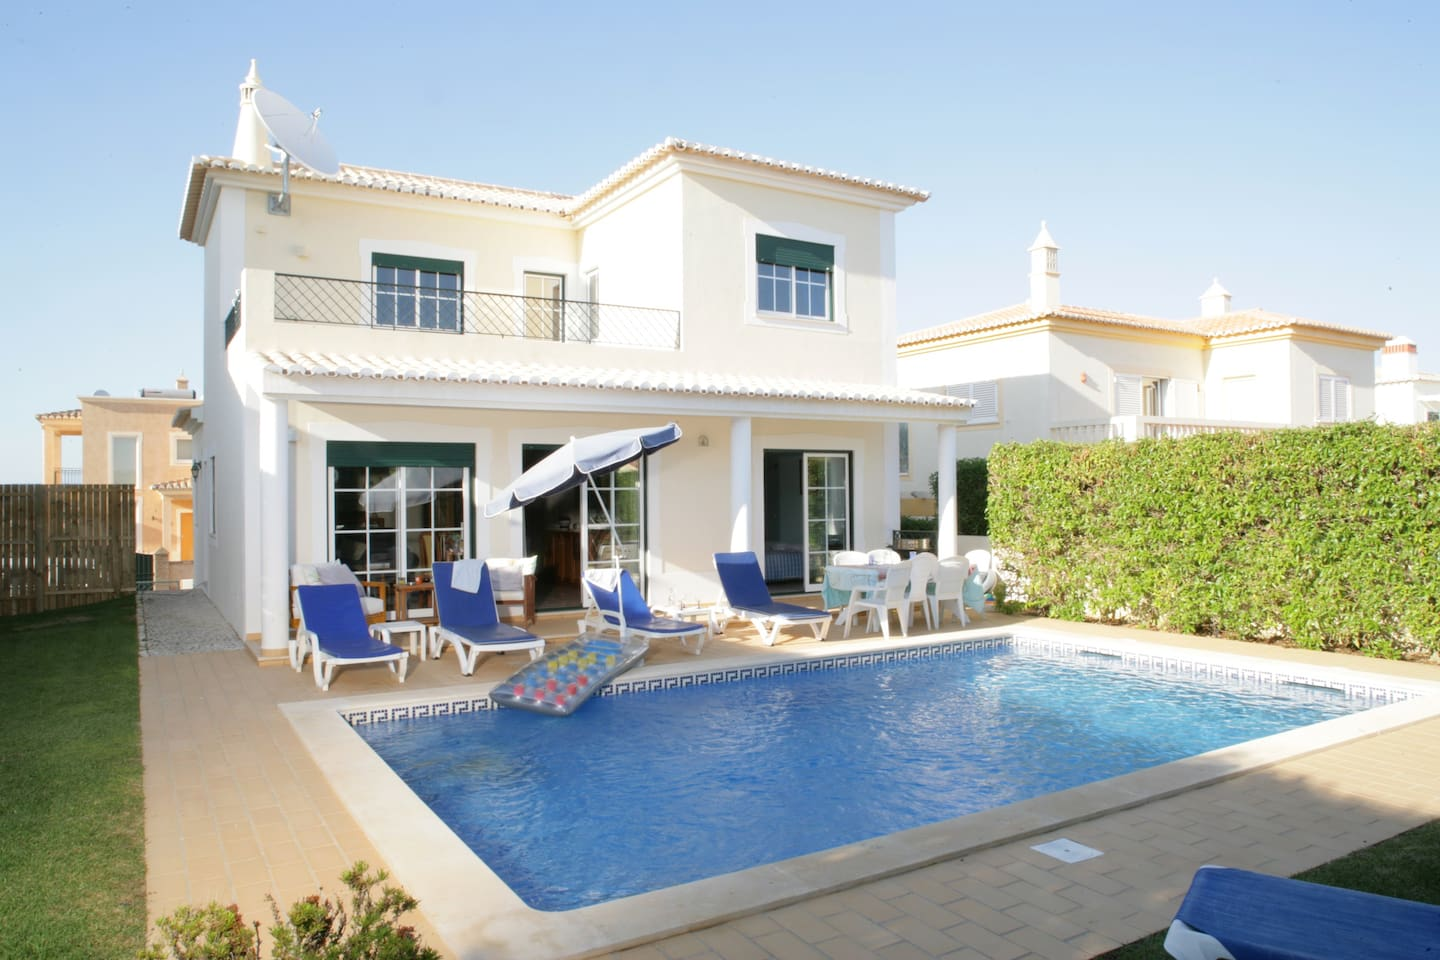 Pool area and terrace with sunloungers outdoor furniture and BBQ